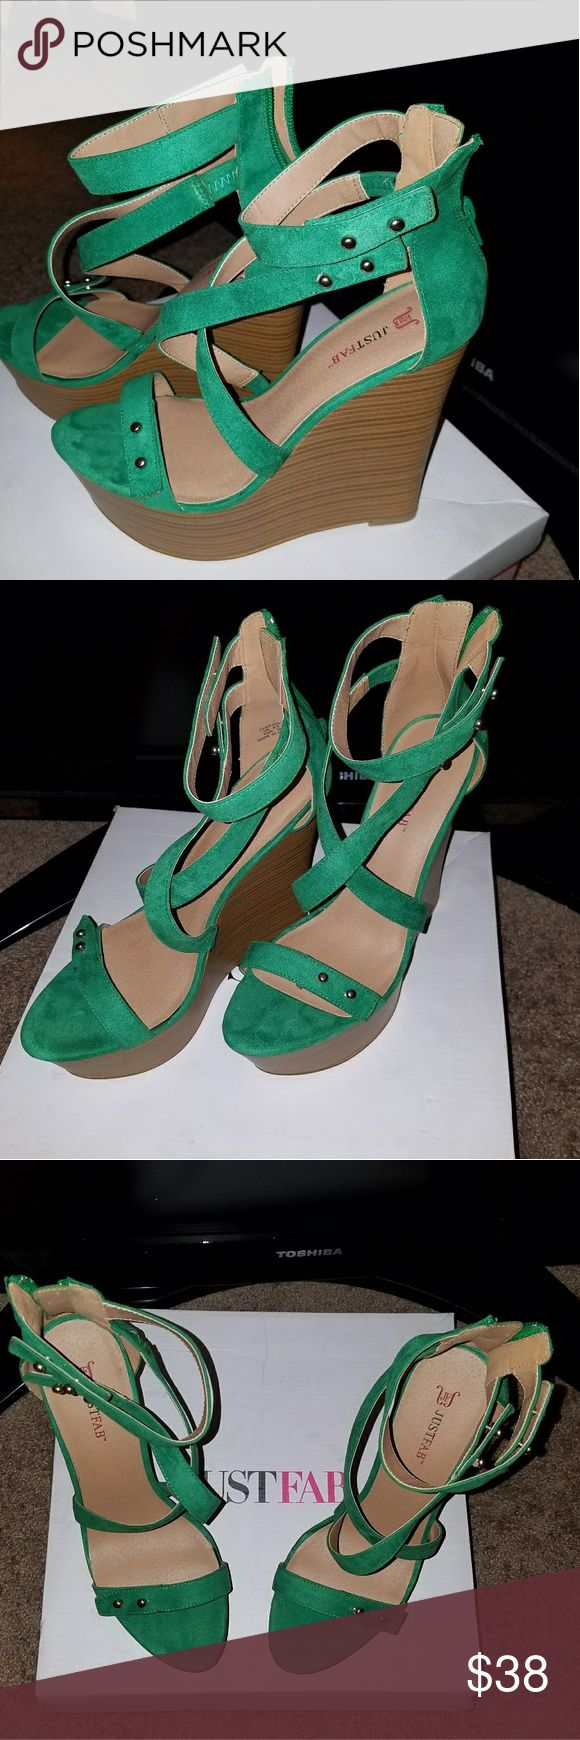 NWT JustFab Clarysa Green Wedge JustFab green wedge nwt JustFab Shoes Wedges